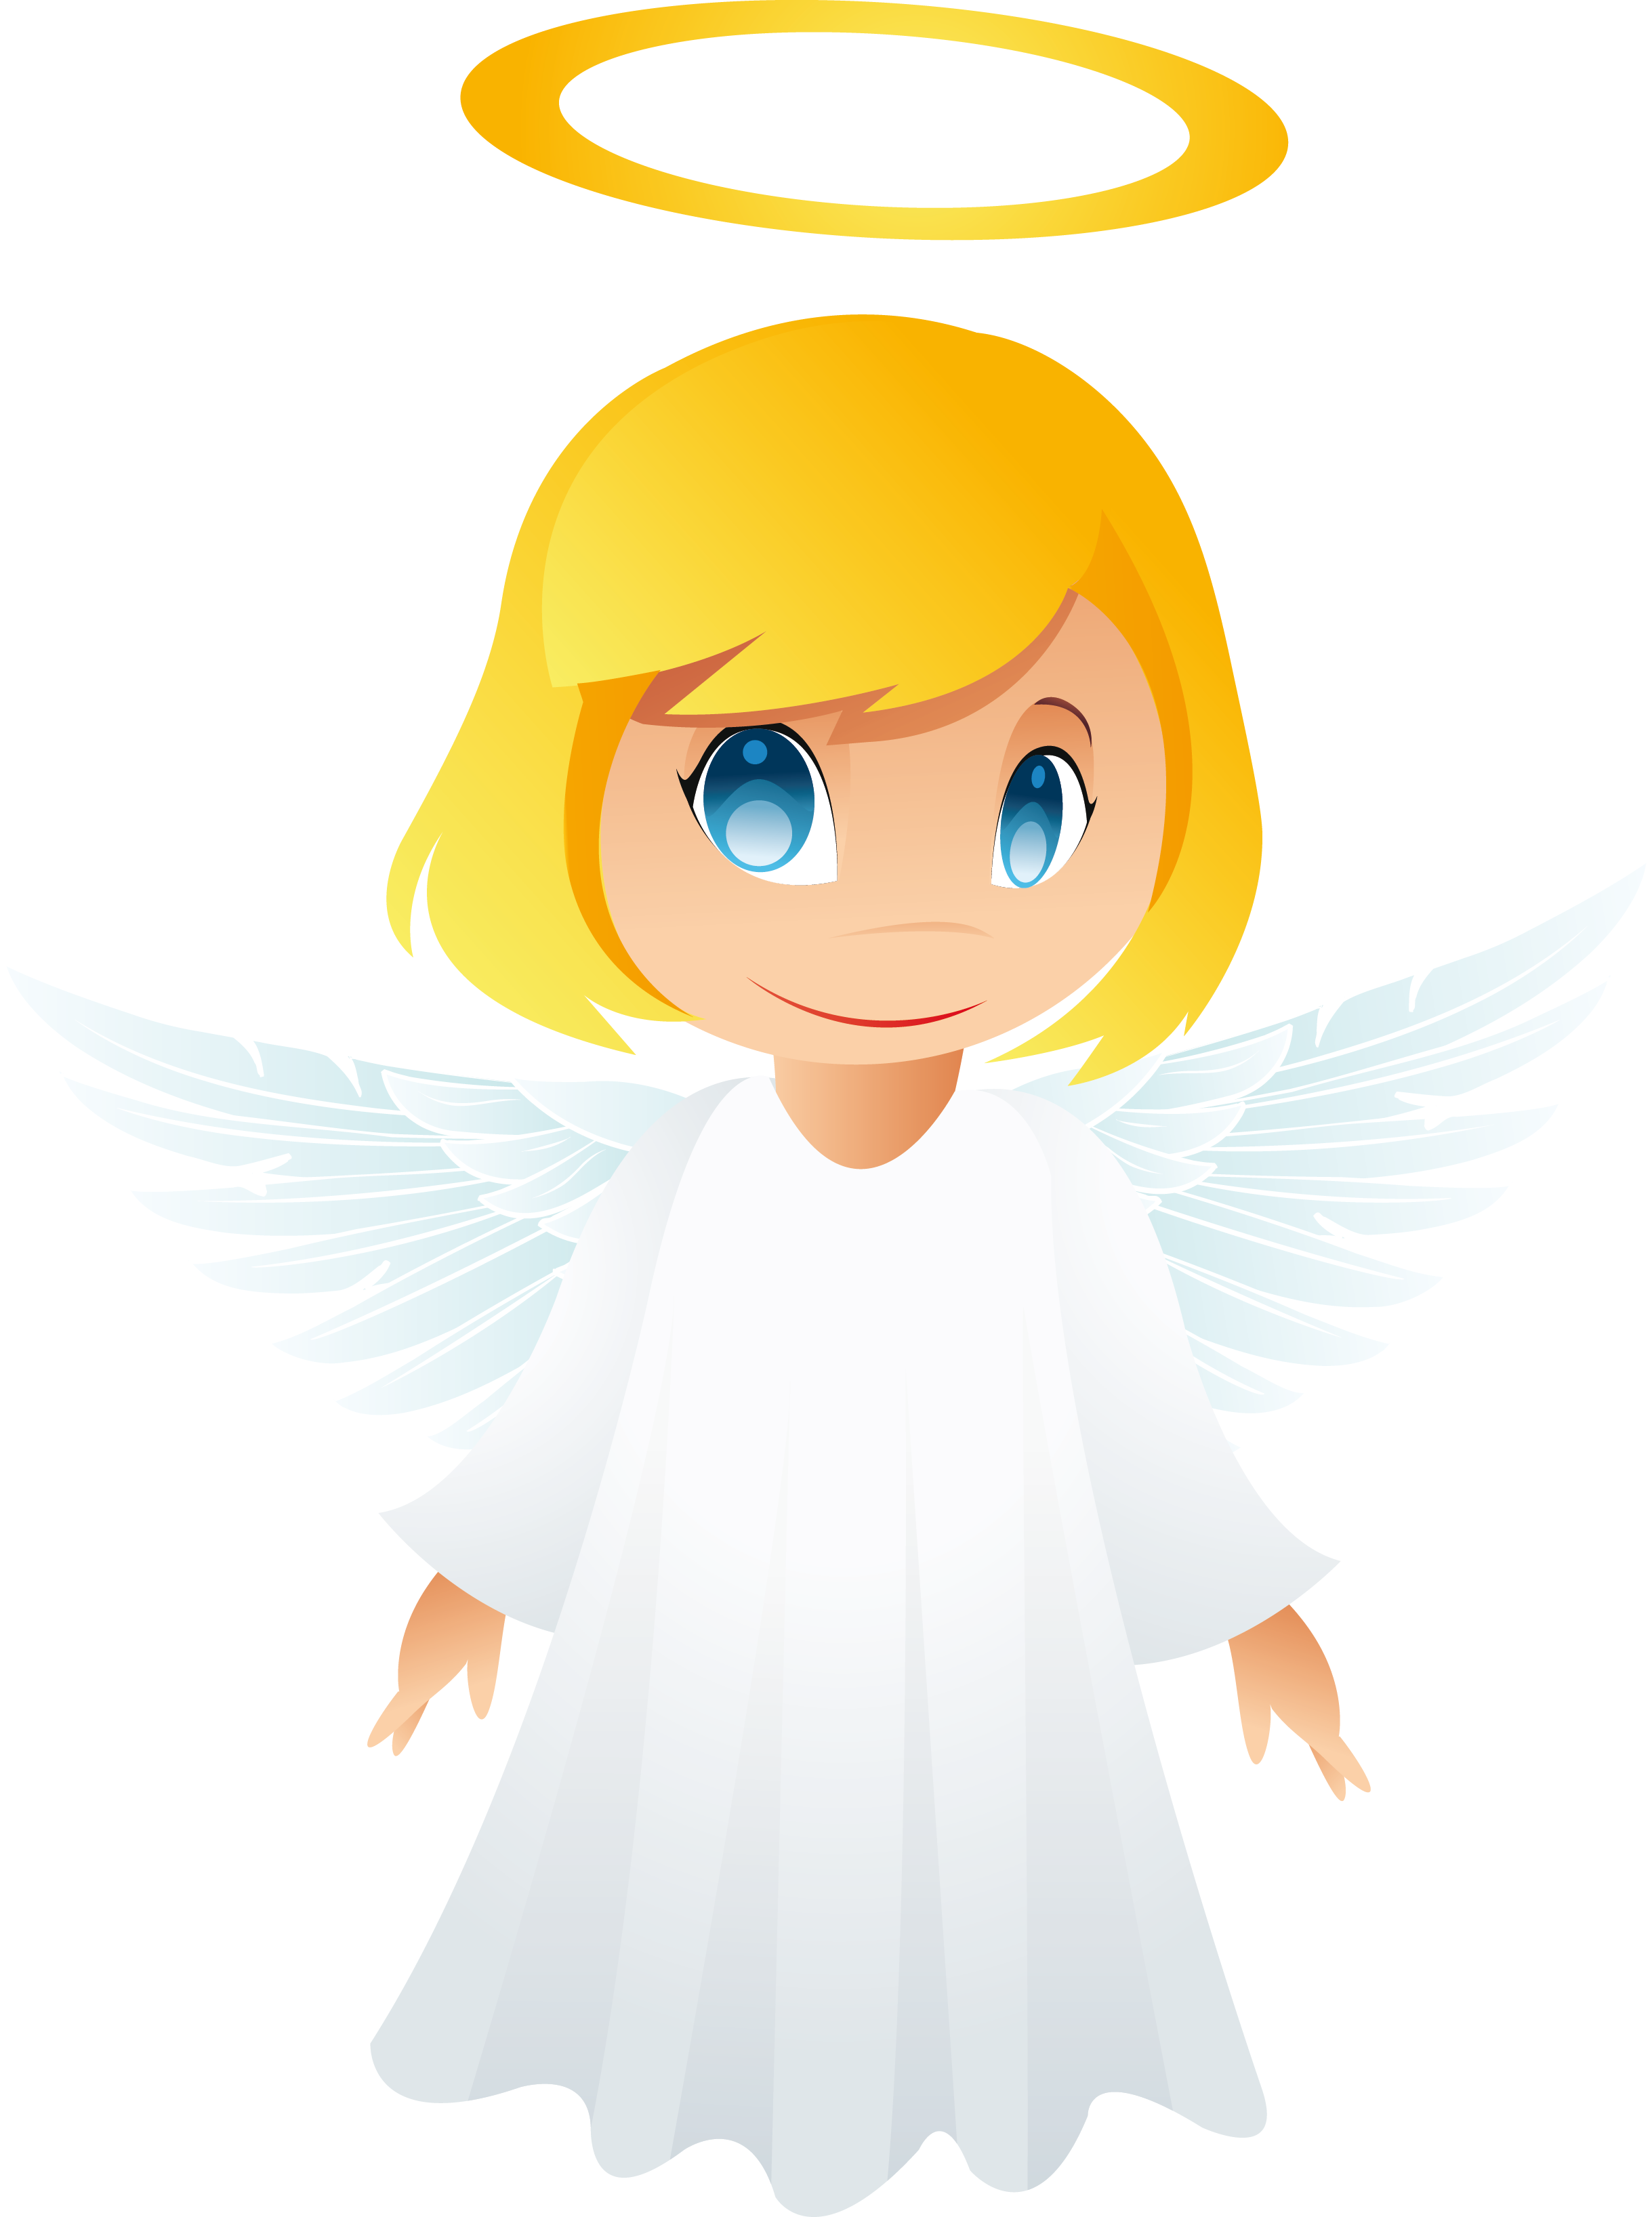 angel clipart free graphics of cherubs and angels the cliparts rh pinterest com guardian angel clipart black and white guardian angel clipart black and white